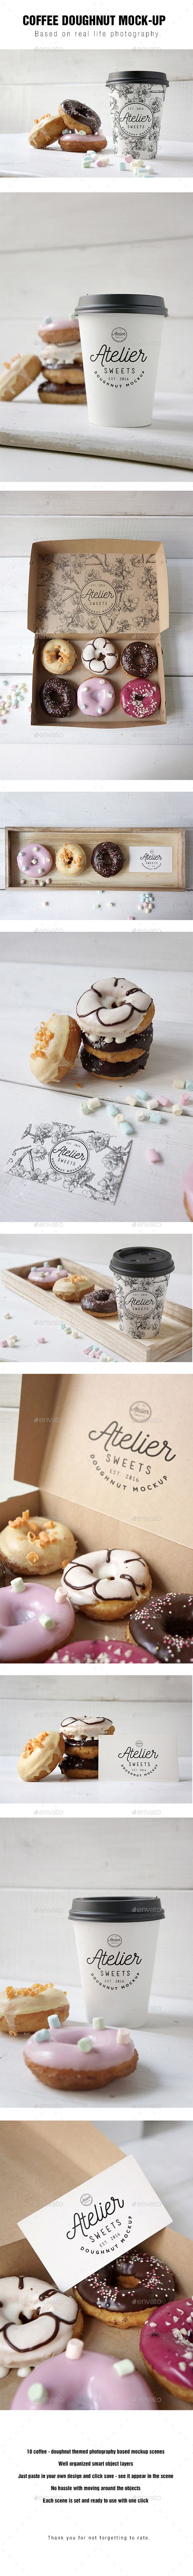 Coffee Doughnut Mockup — Photoshop PSD #psd mockup #food • Available here → https://graphicriver.net/item/coffee-doughnut-mockup/17144327?ref=pxcr